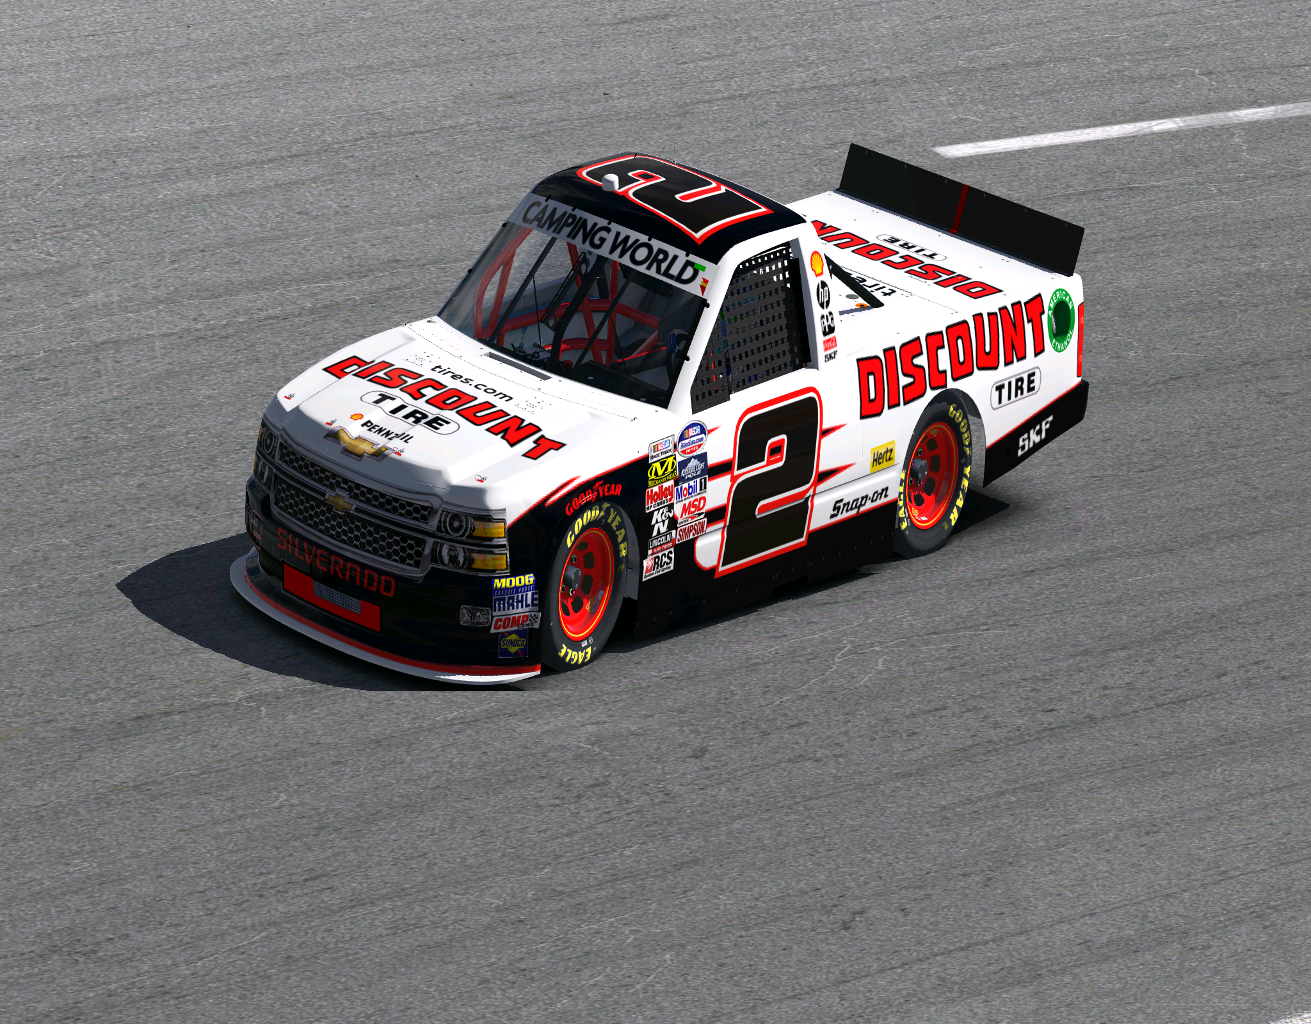 Preview of Discount Tire Silverado by Todd Ressler